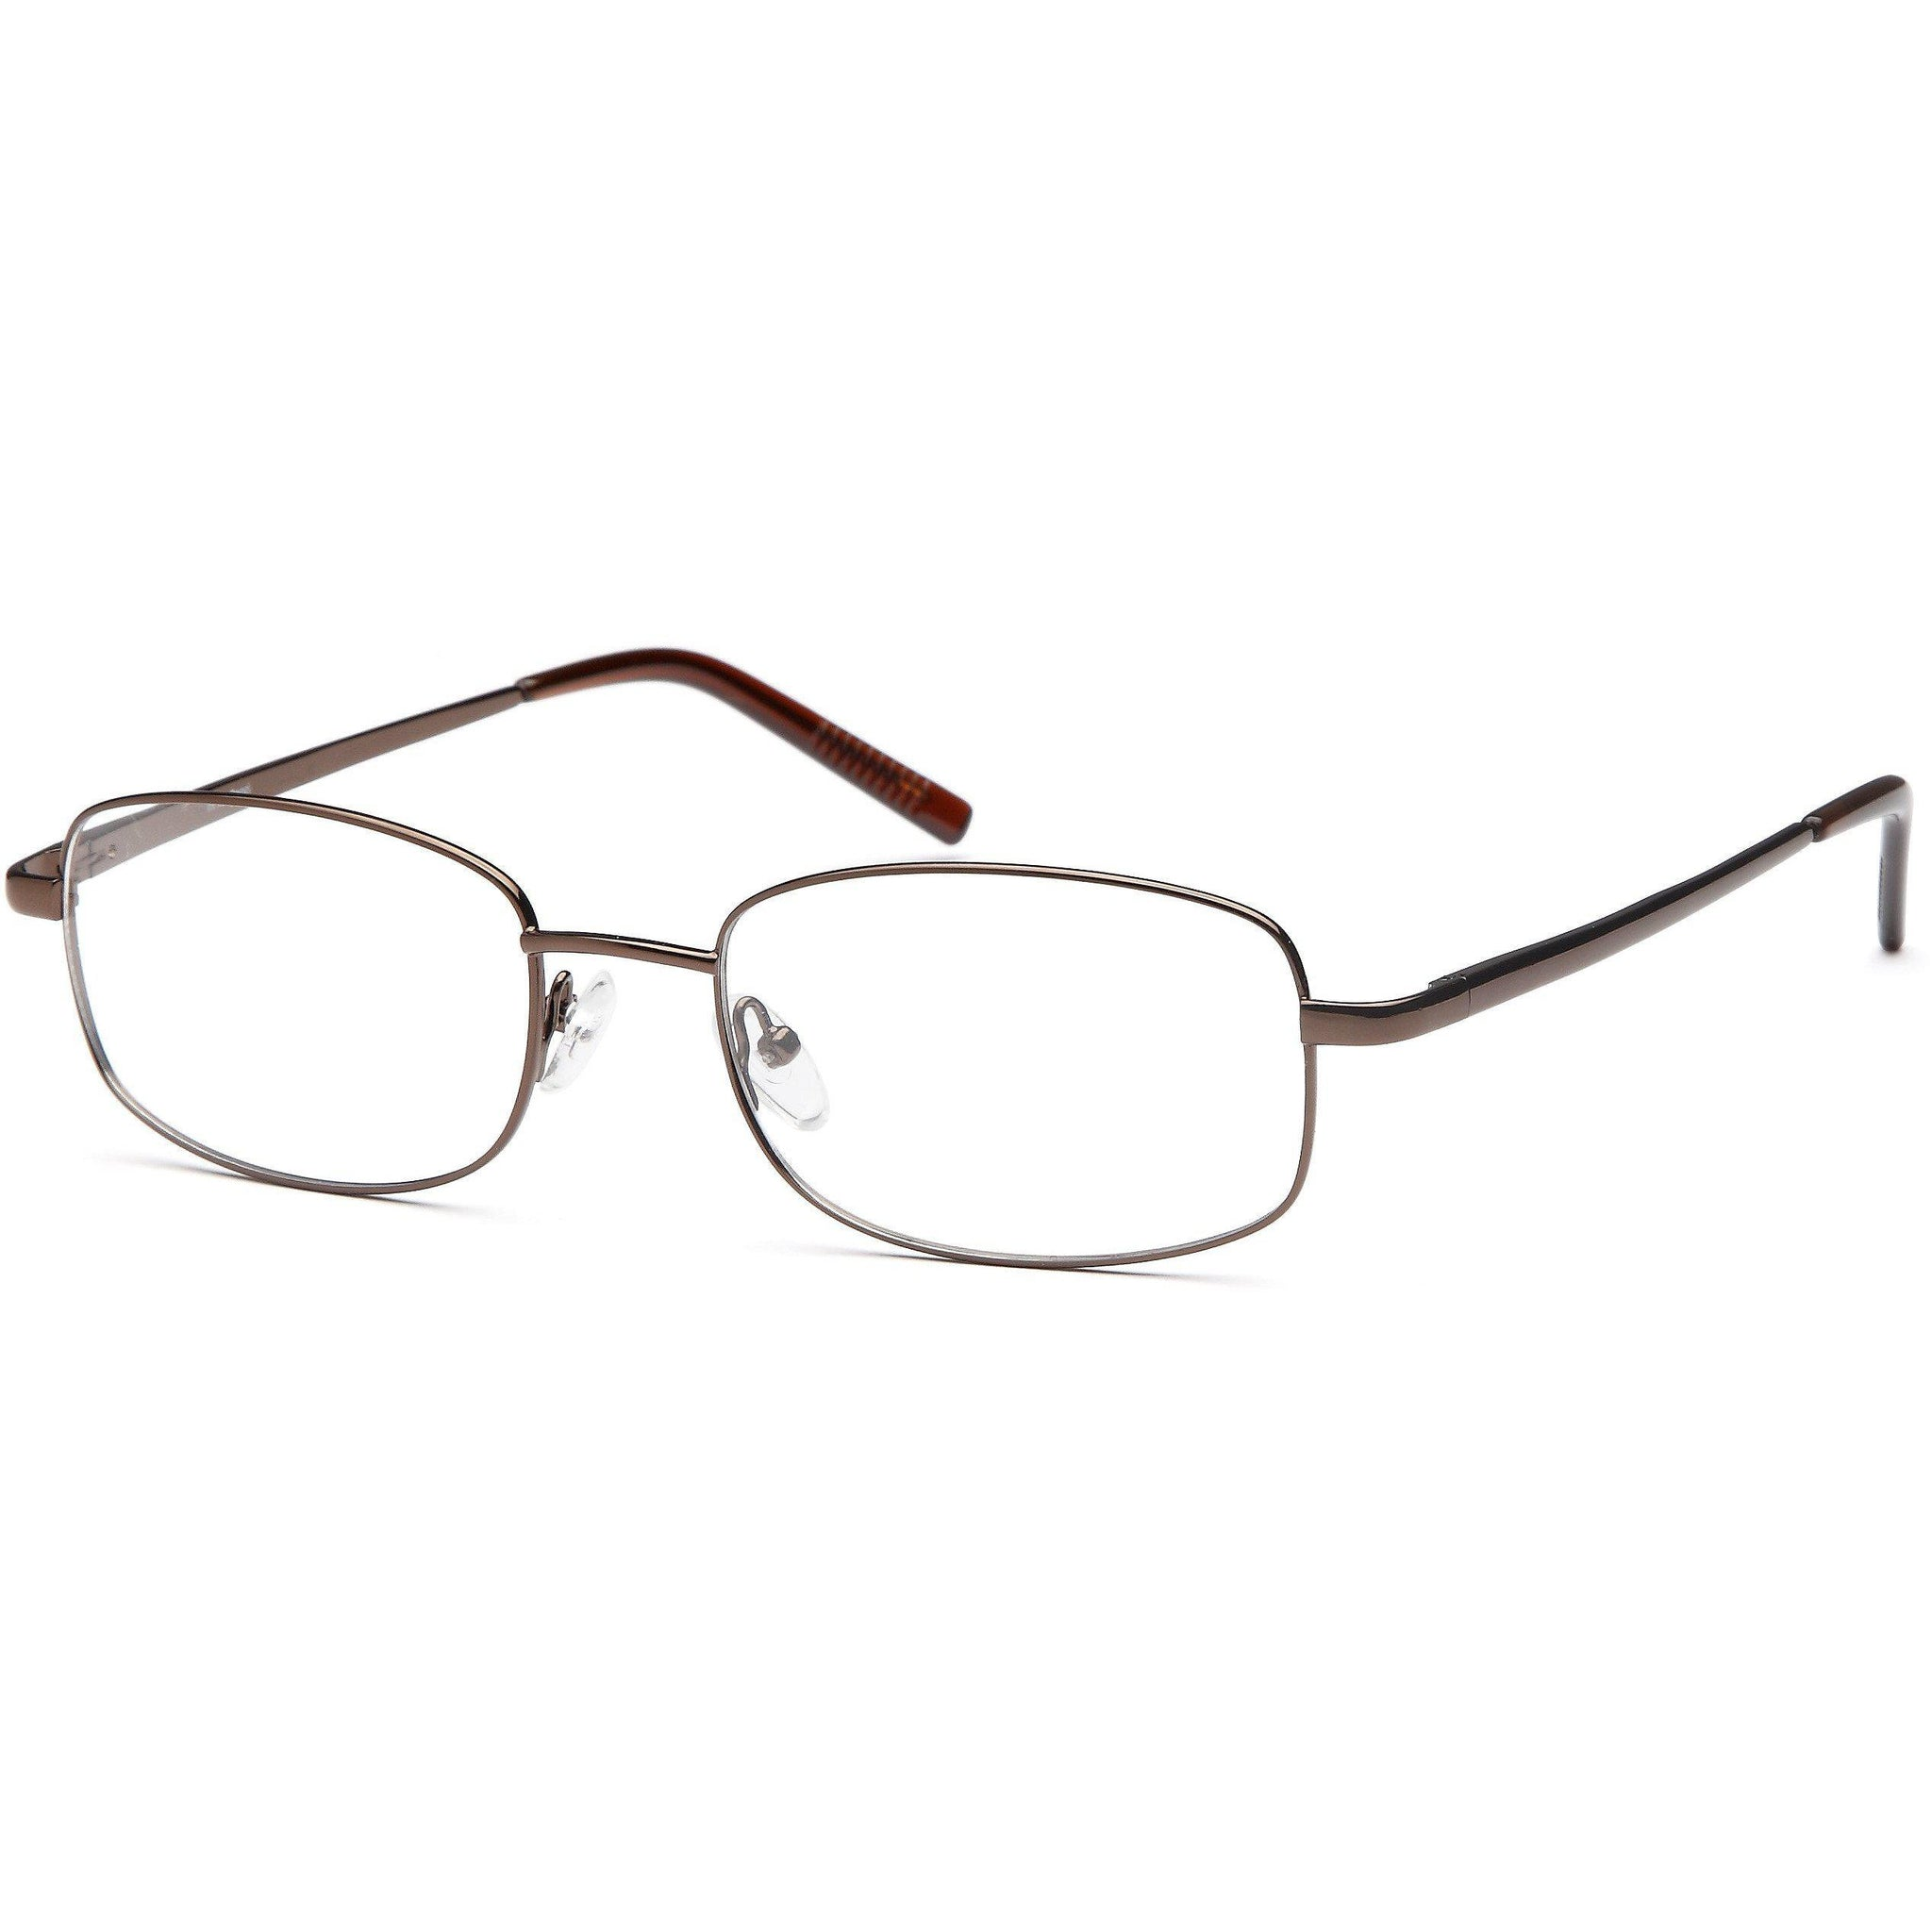 Appletree Prescription Glasses 7719 Eyeglasses Frame